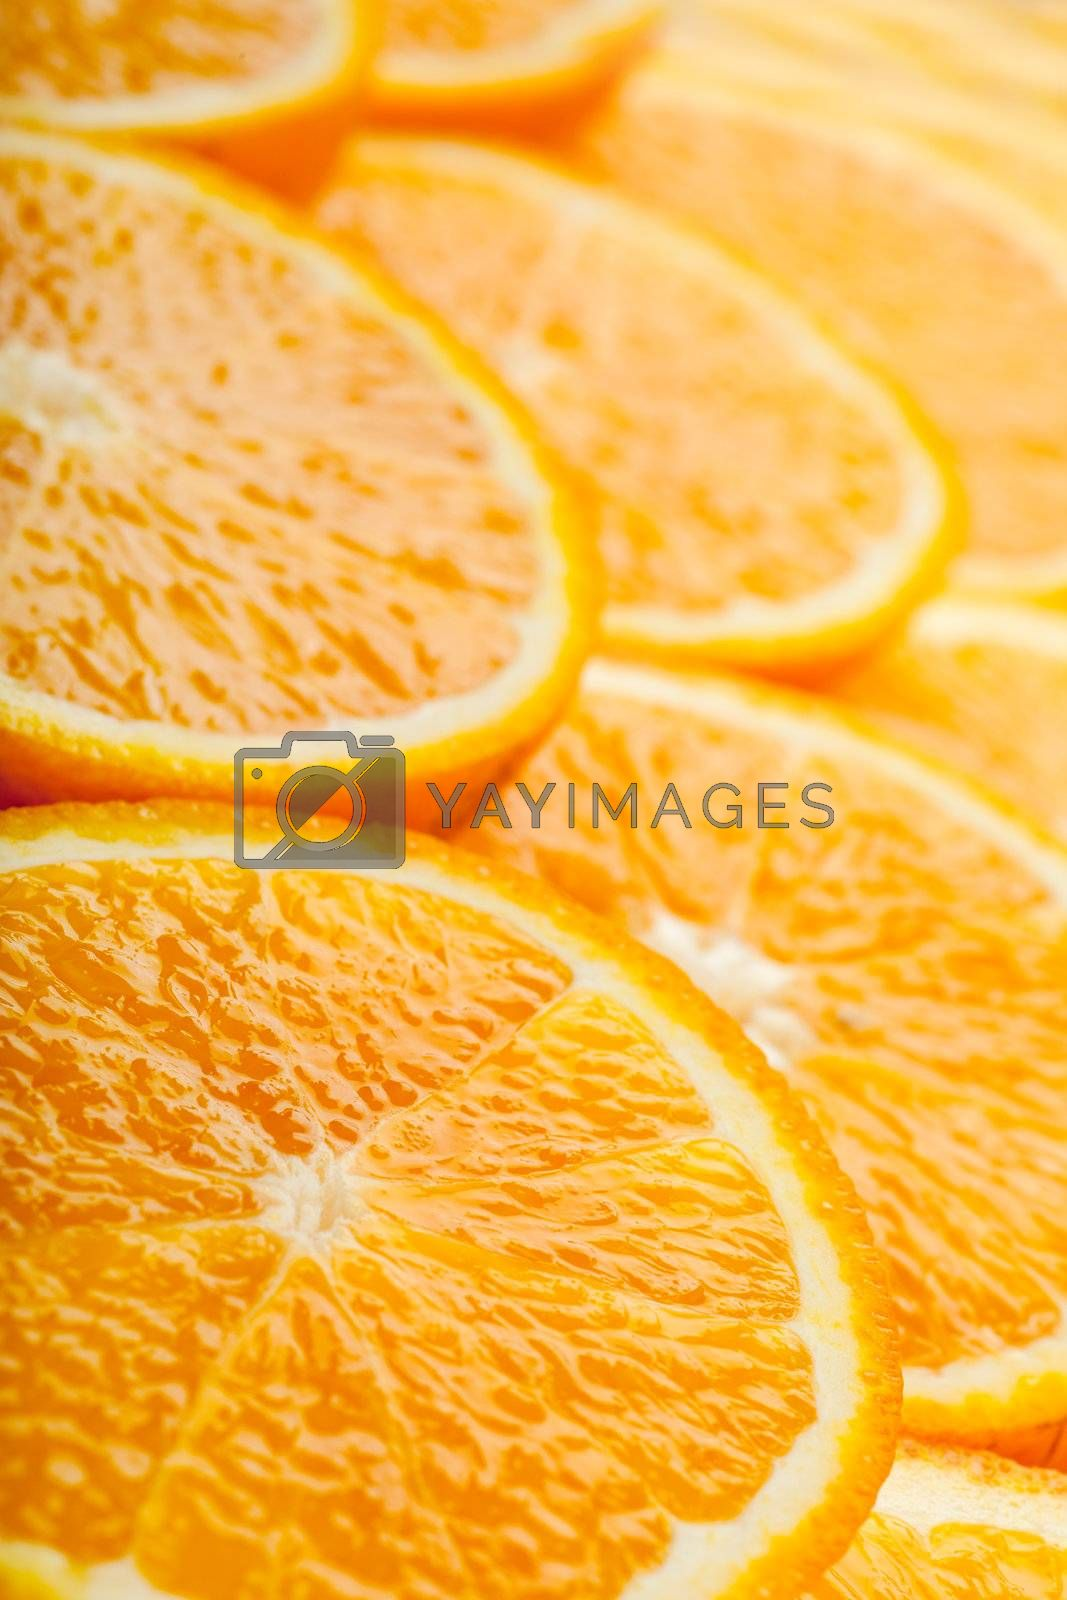 Abstract background with fresh juicy orange slices